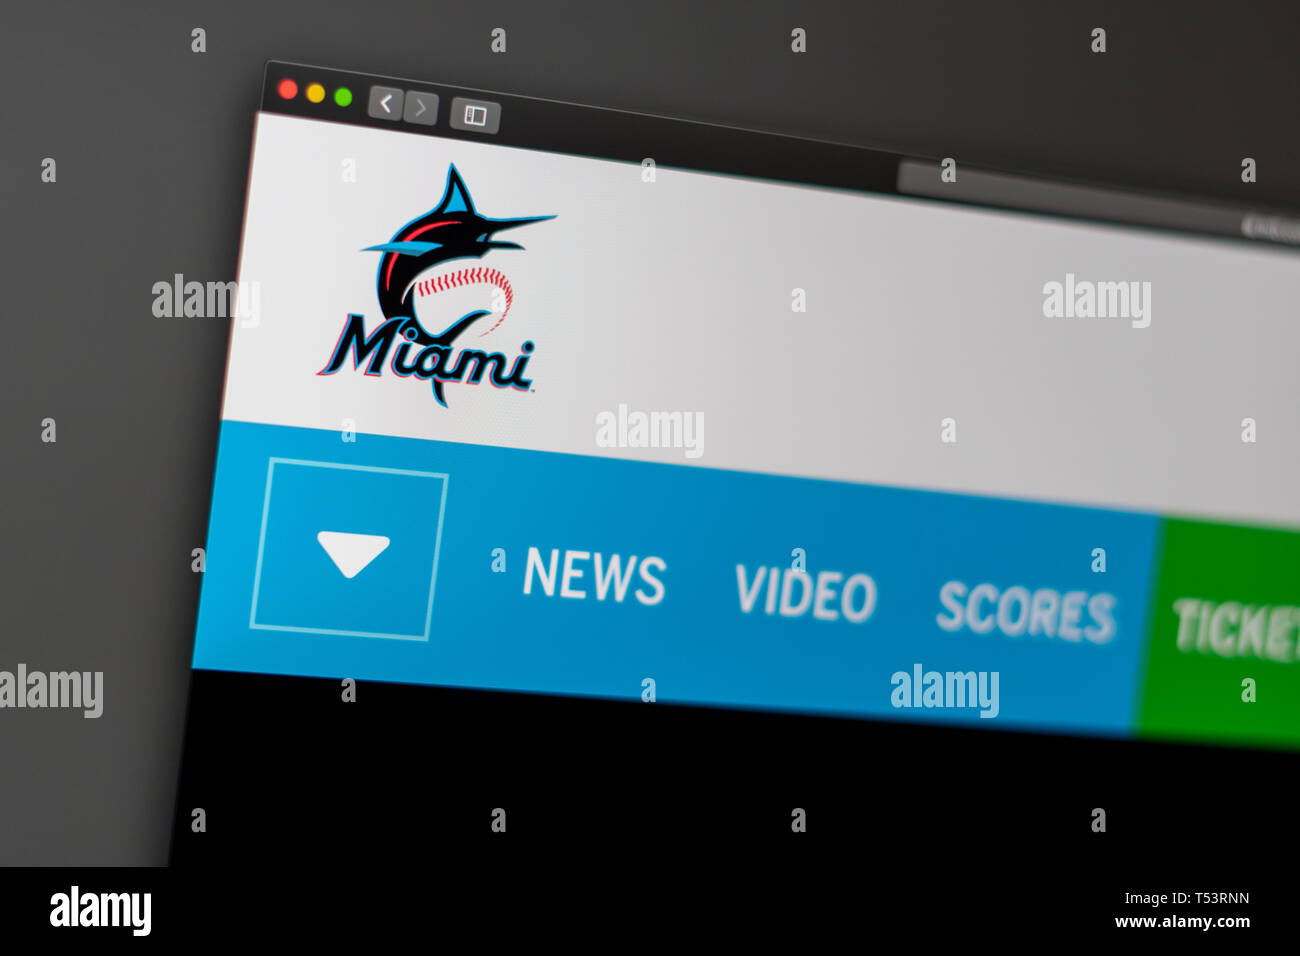 baseball team miami marlins